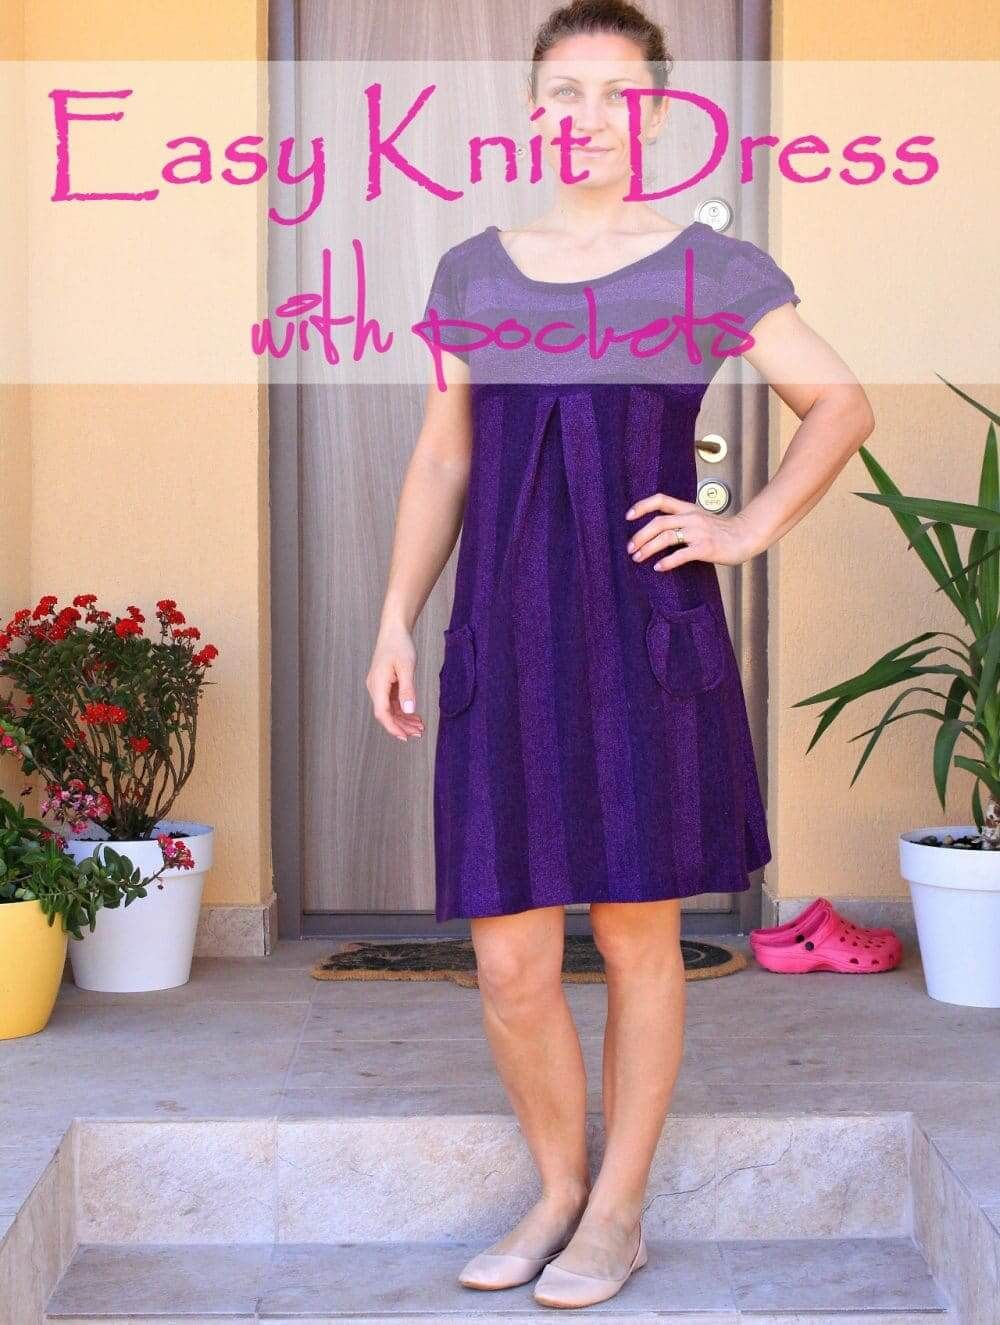 Easy Knit Dress With Pockets | Sewing patterns, Patterns and Sew pattern